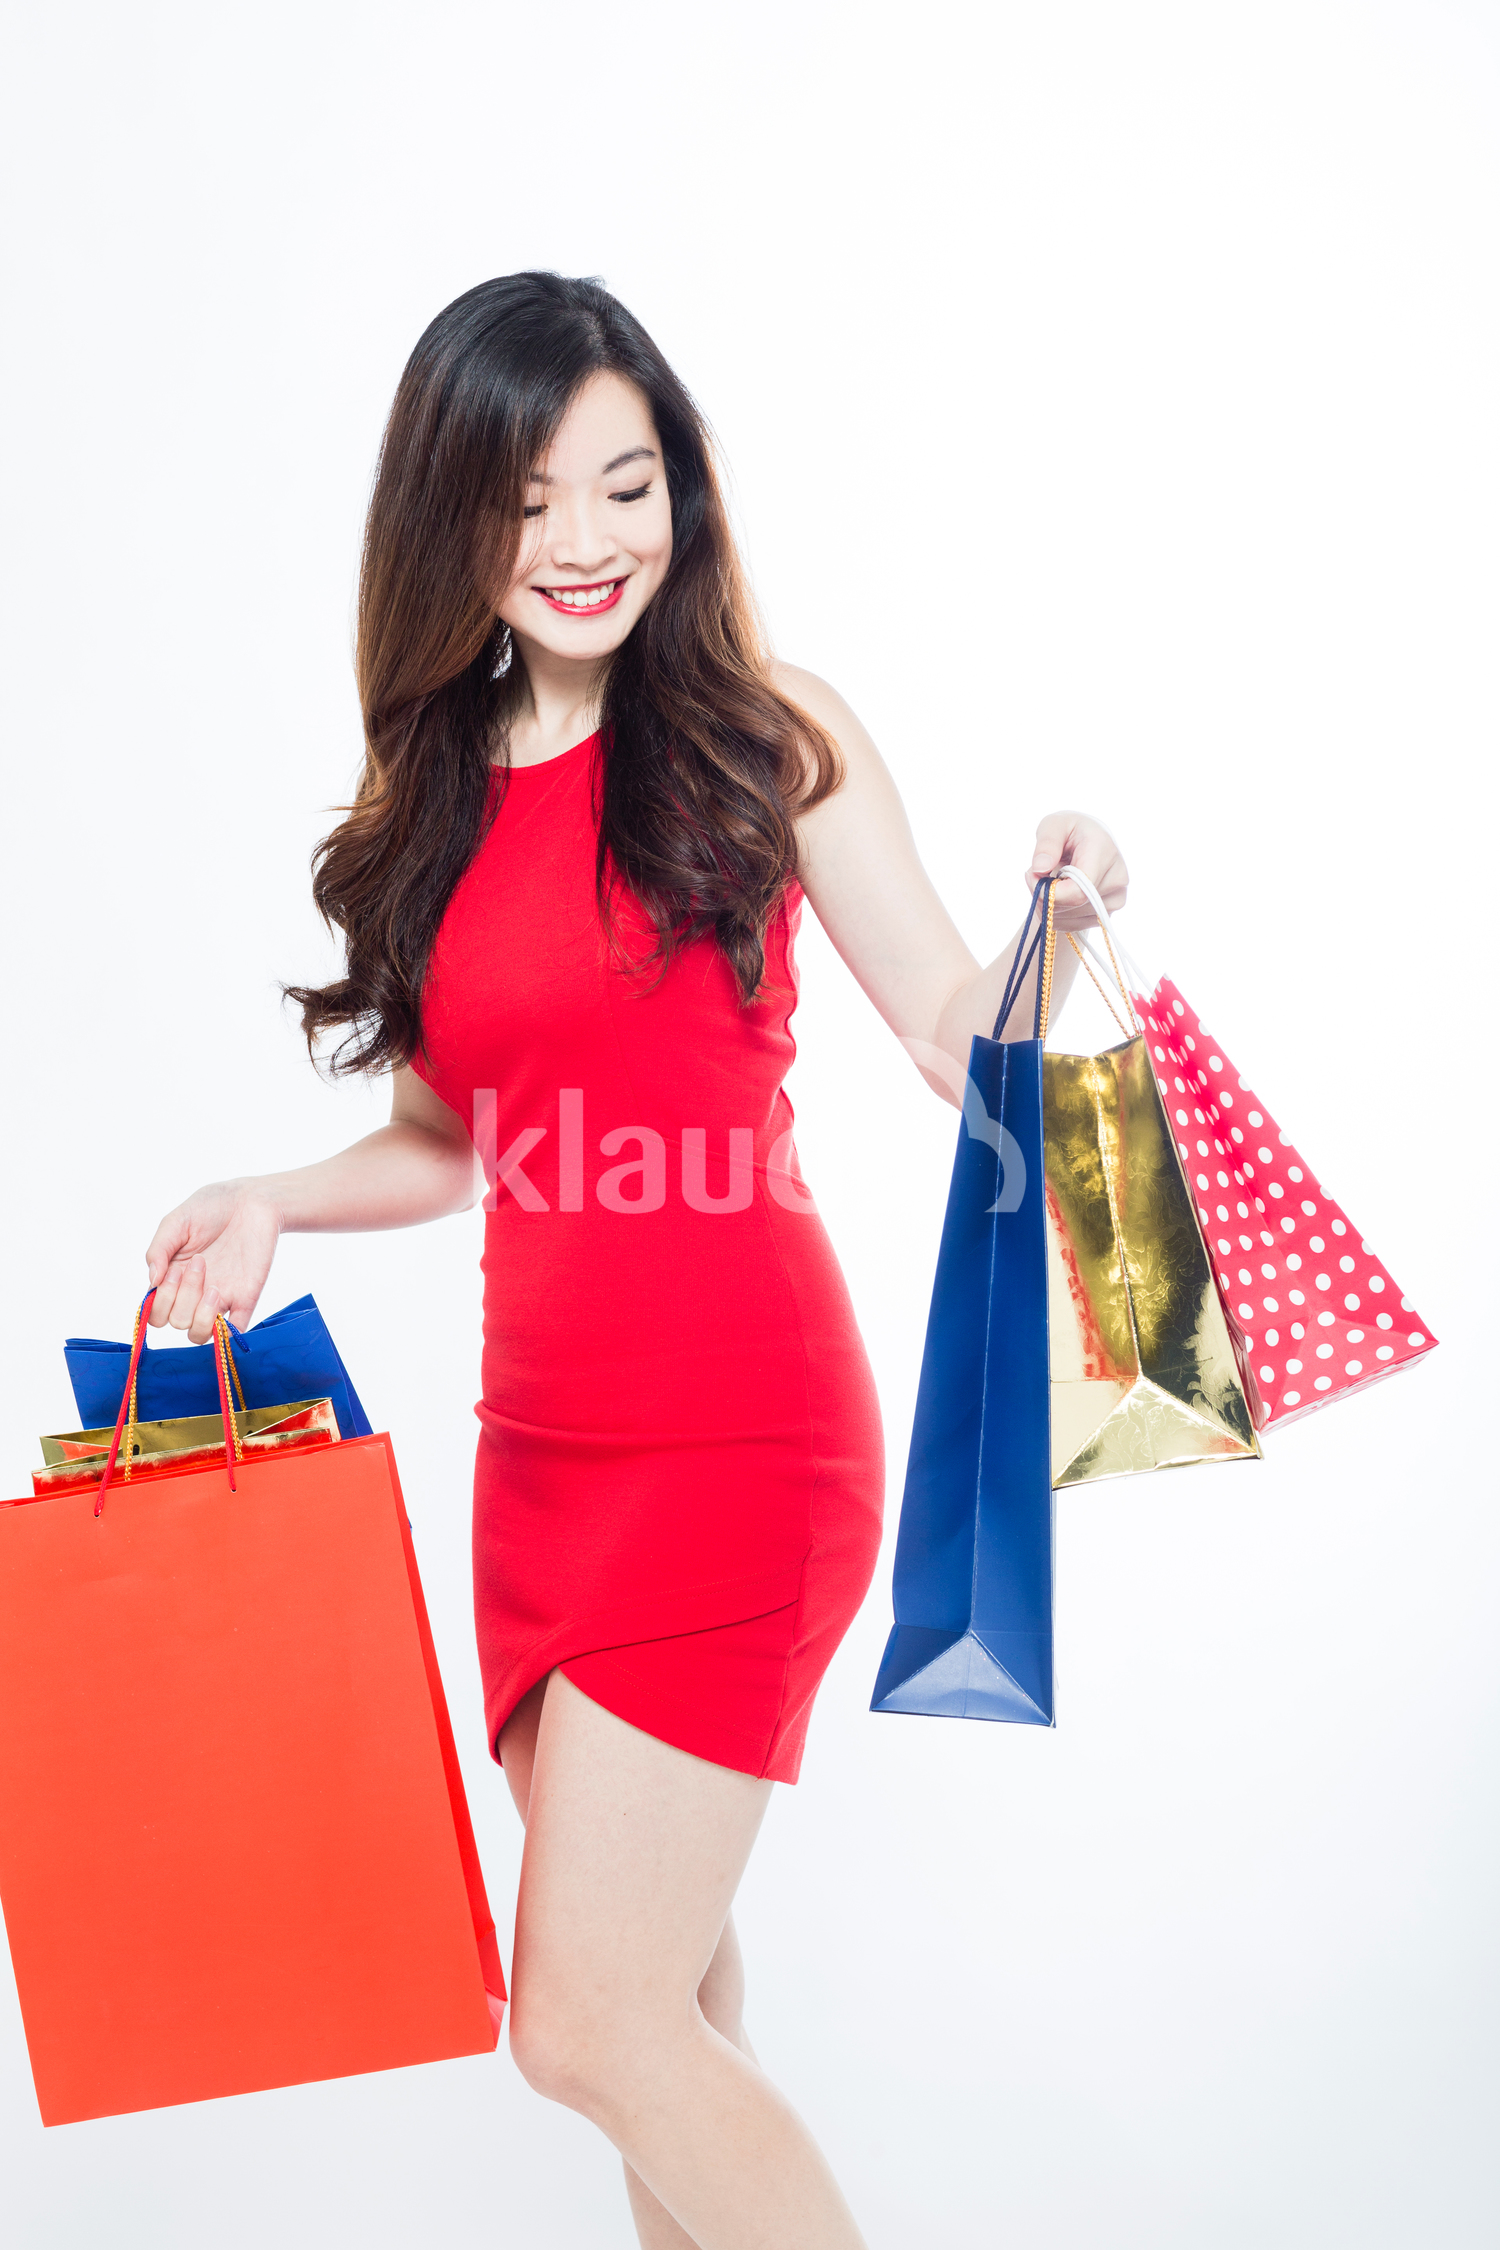 Long Hair woman with her shopping bags